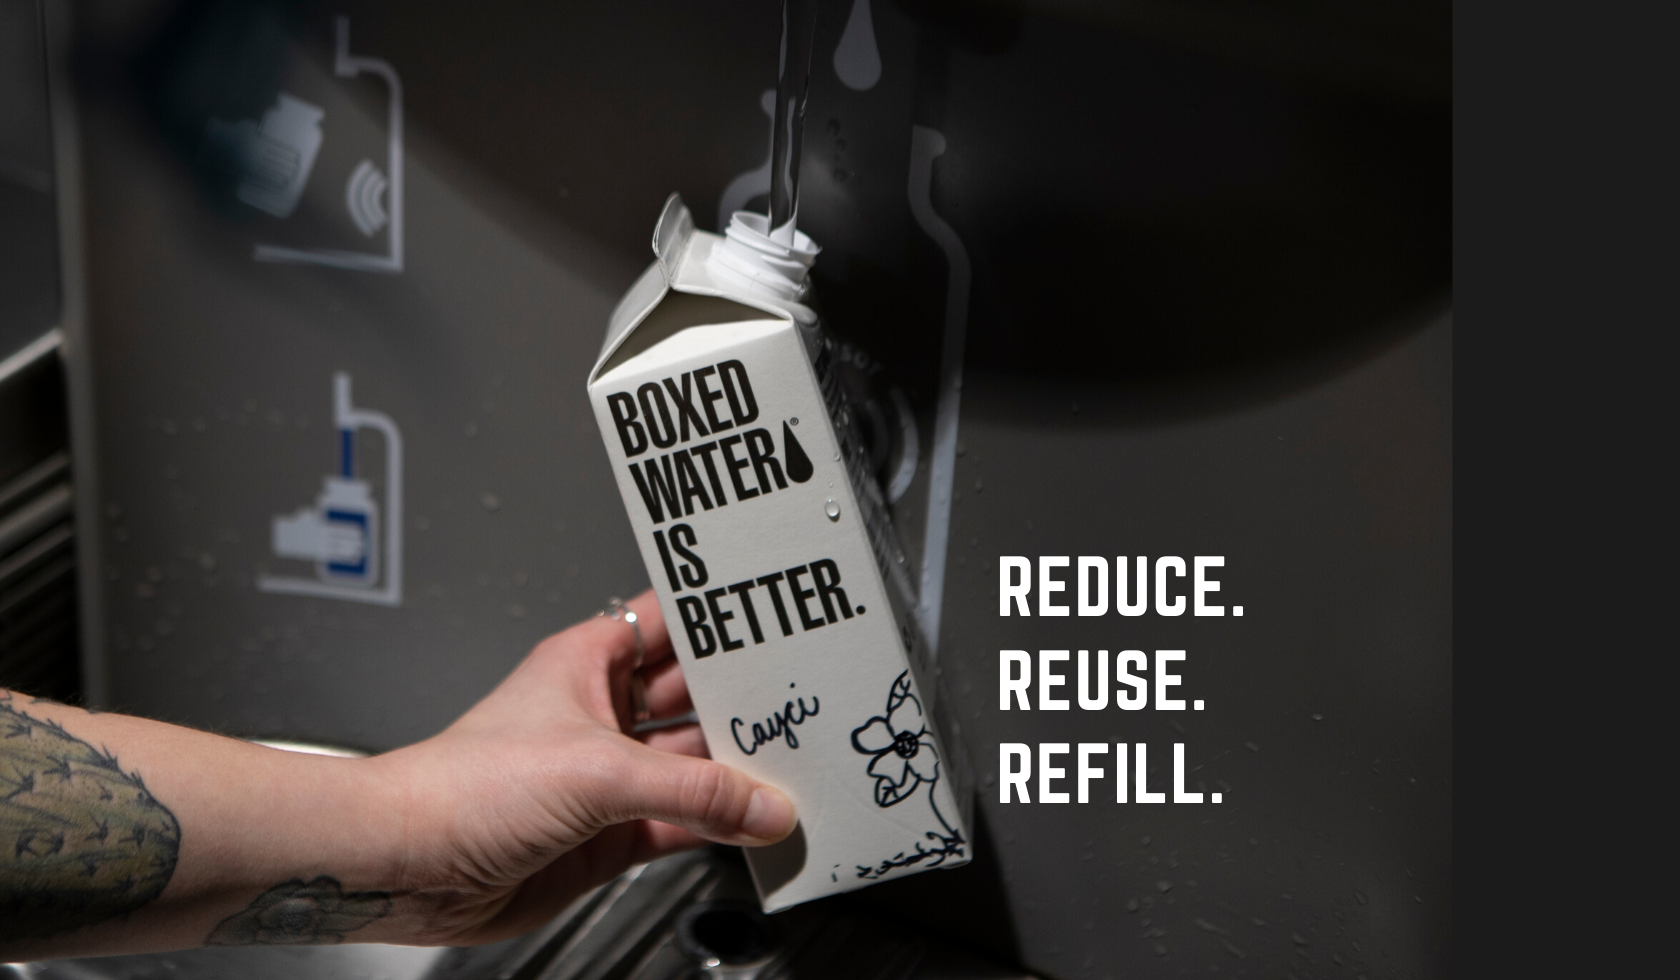 Did you know? Boxed Water cartons are reusable!